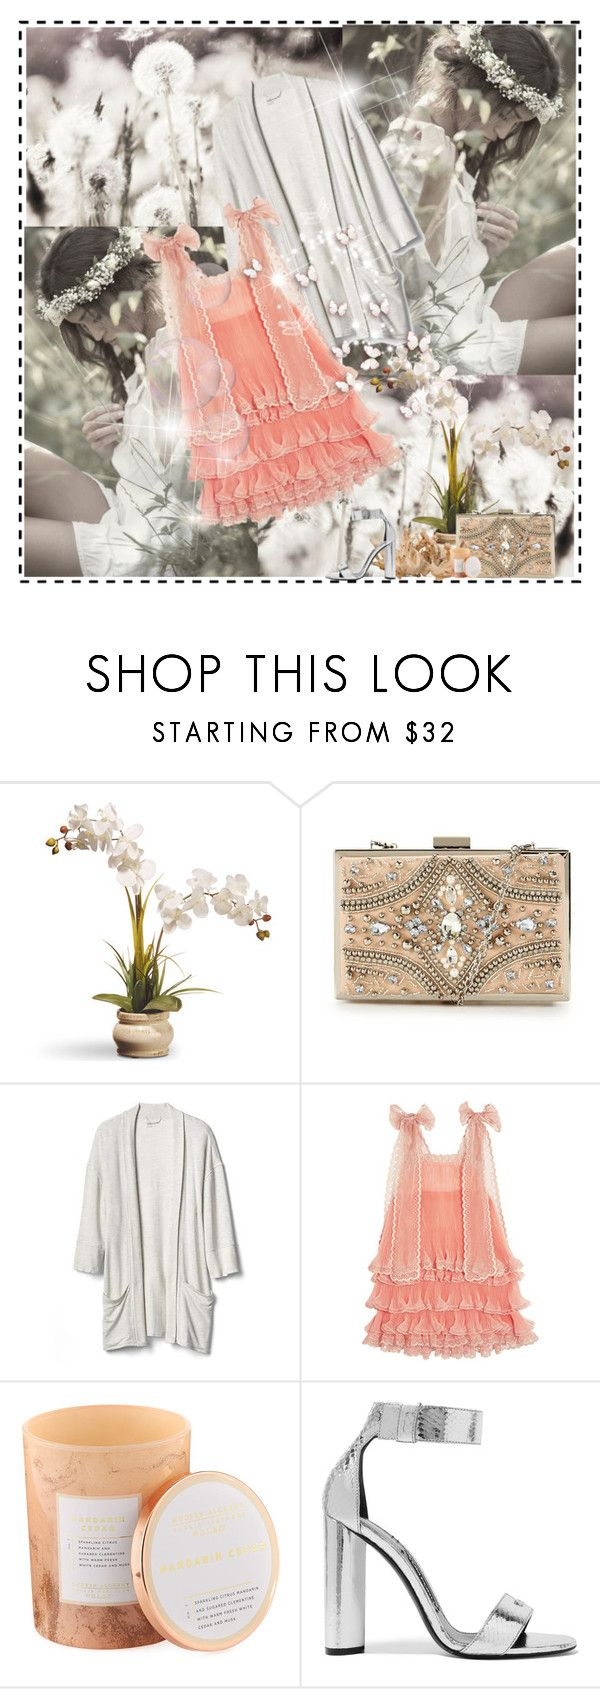 """#119"" by beautifulplace ❤ liked on Polyvore featuring National Tree Company, Forever Unique, Gap, Chloé, D.L. & Co. and Tom Ford"